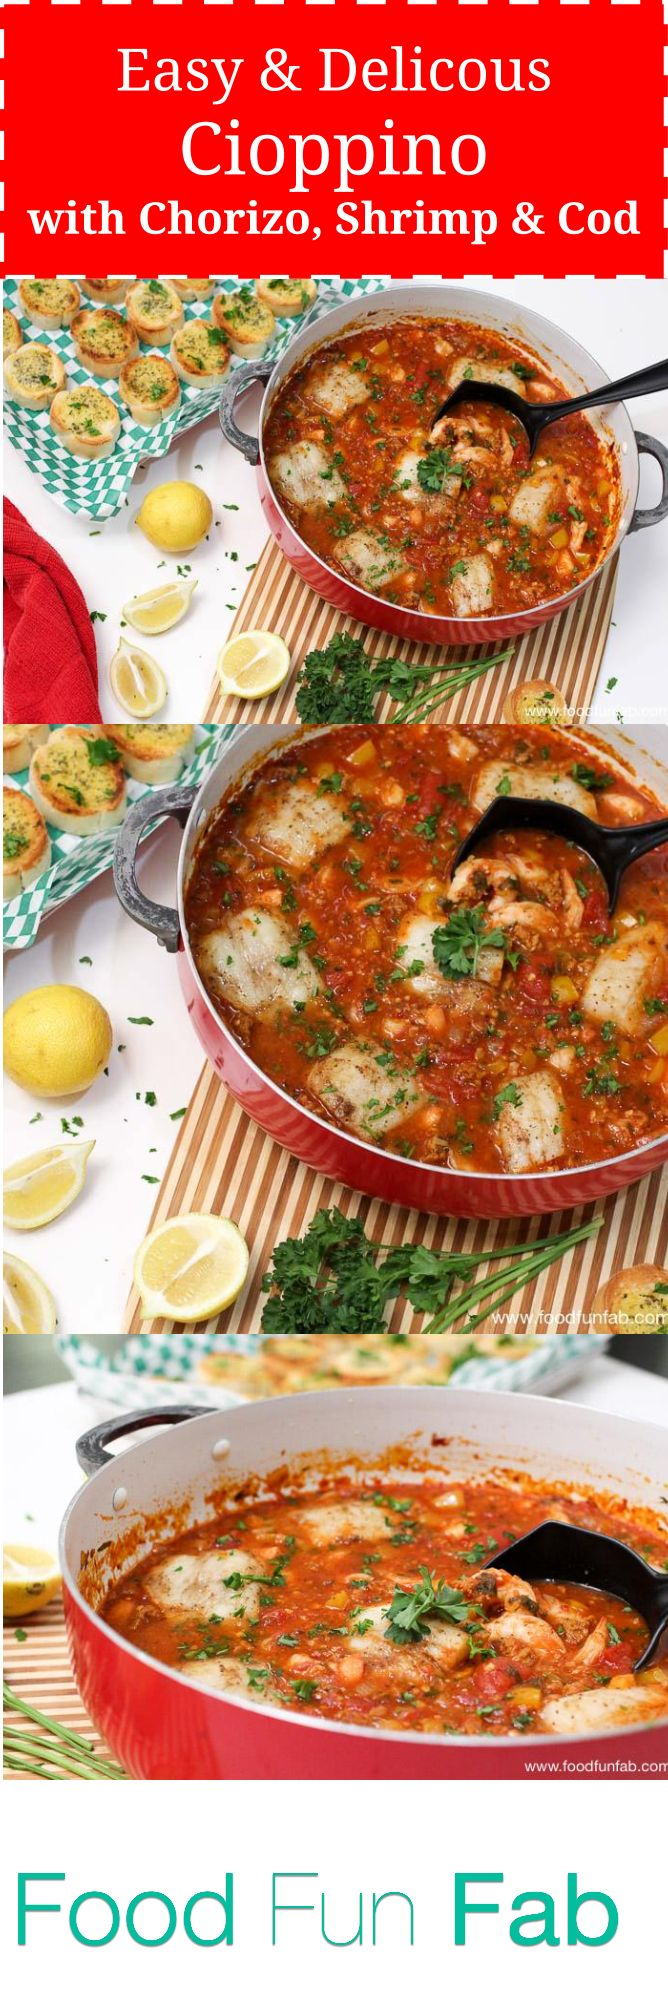 So good. So declious. This will make you wish everday was Fish Friday! You gotta try this lip smacking, tongue tingling delicious cioppino recipe.  #cioppino #foodfunfab #foodblogger #foodblogs